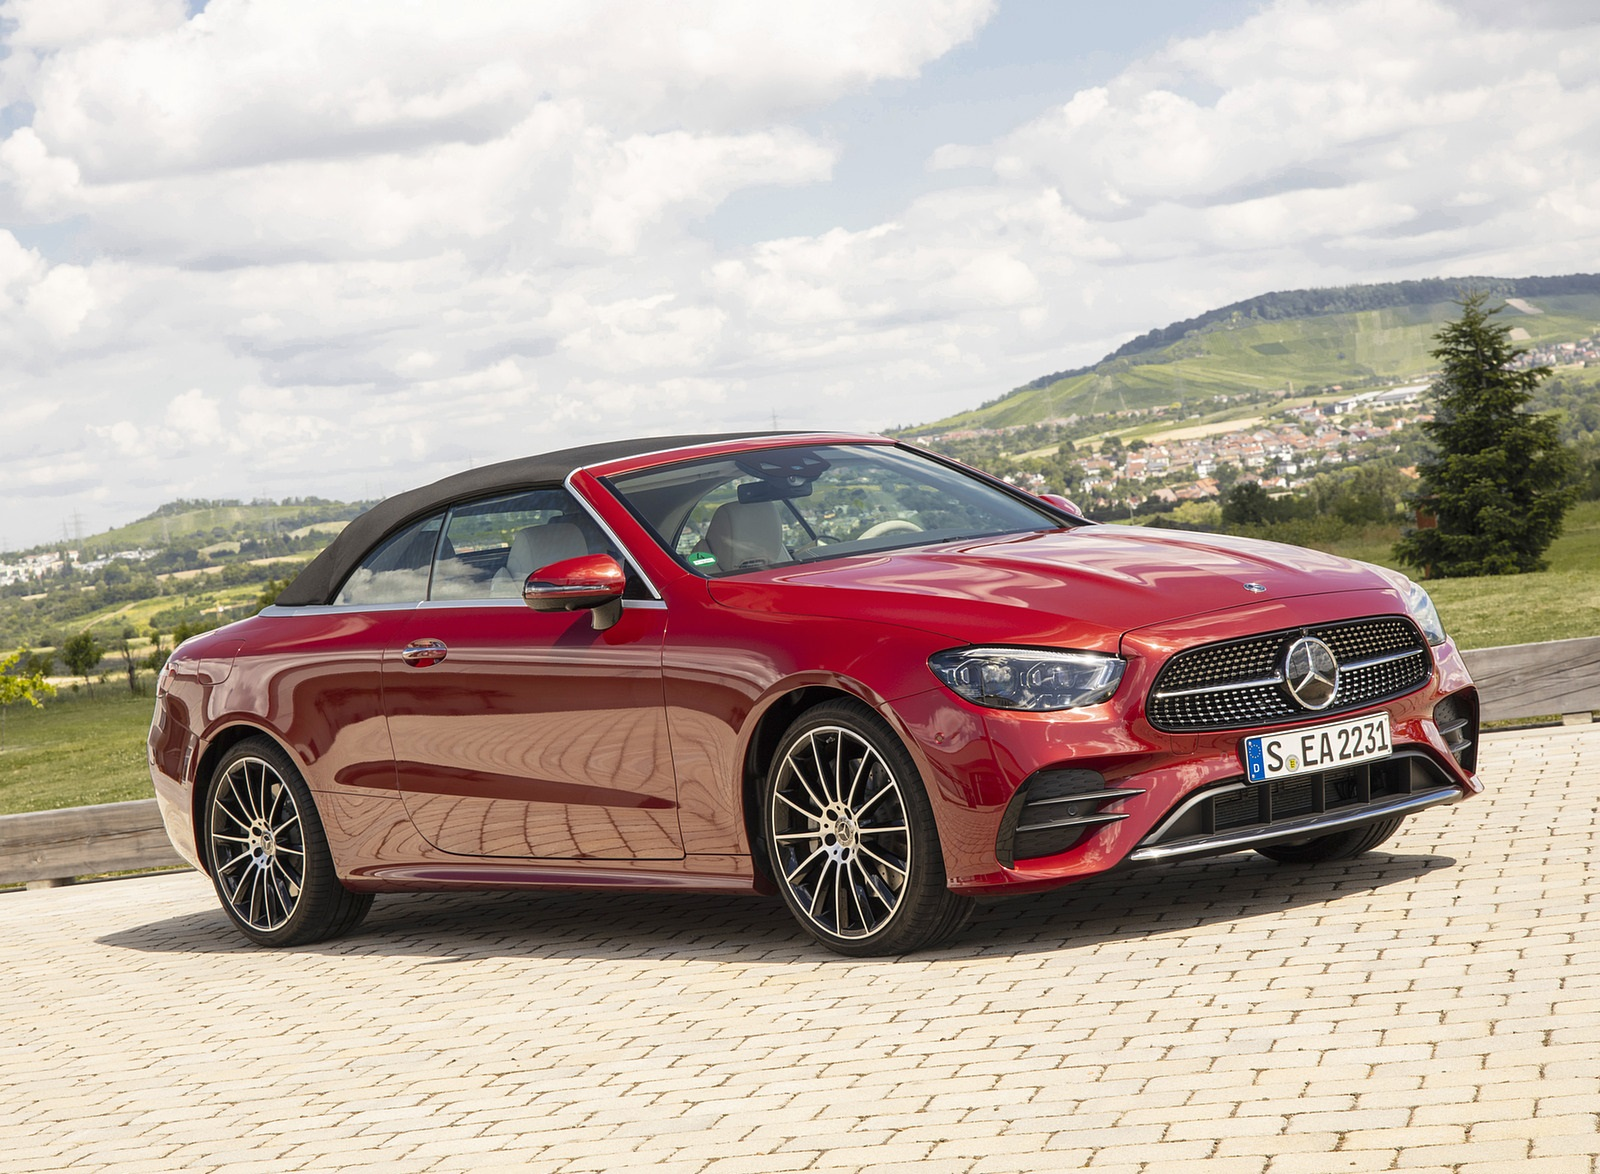 2021 Mercedes-Benz E 450 4MATIC Cabriolet (Color: Patagonia Red) Front Three-Quarter Wallpapers (6)